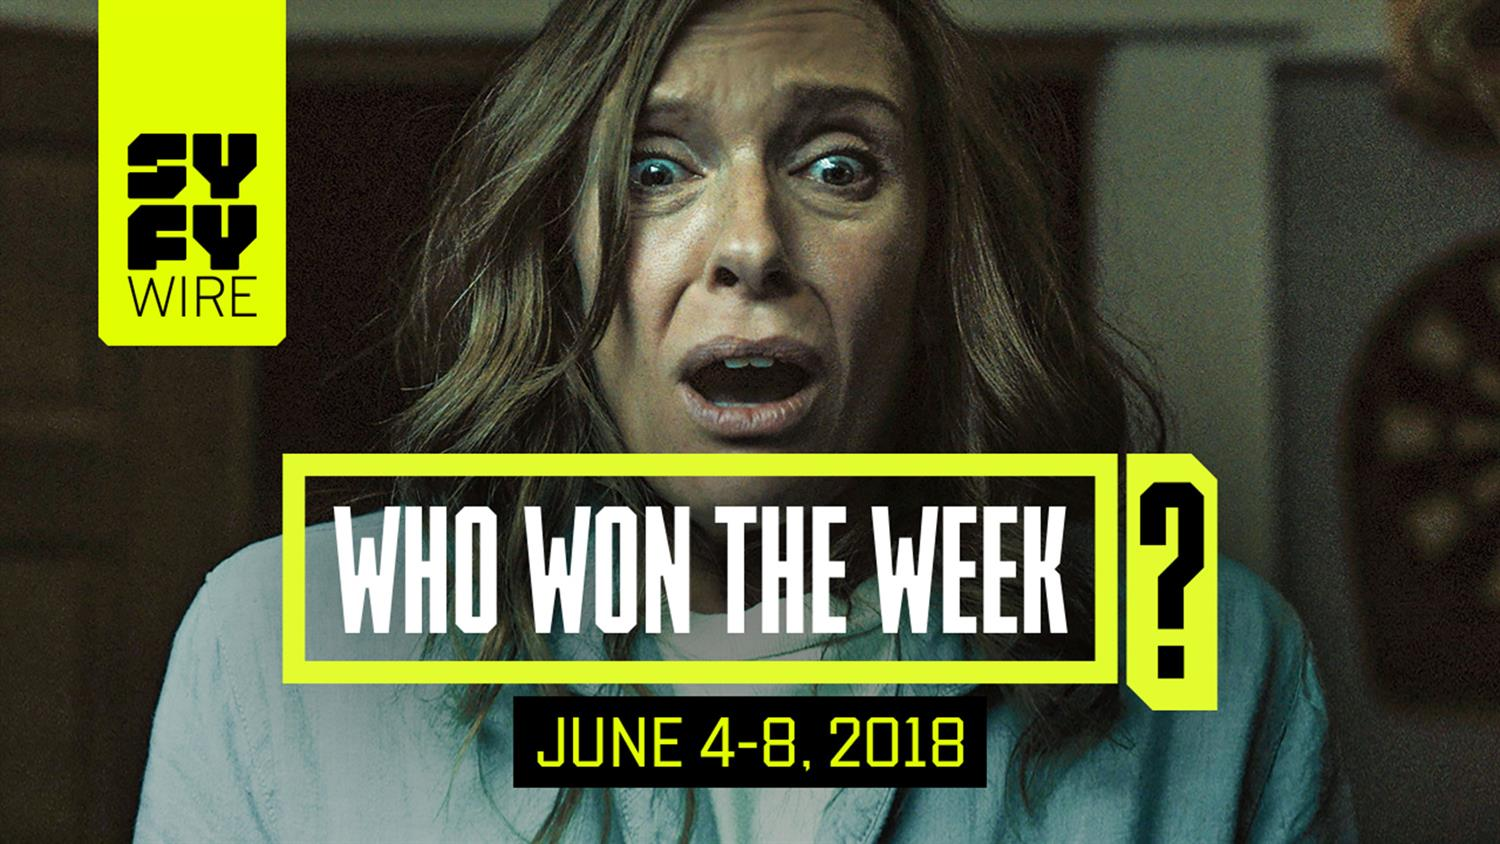 Hereditary and Cloak & Dagger: Who Won The Week For June 4-8